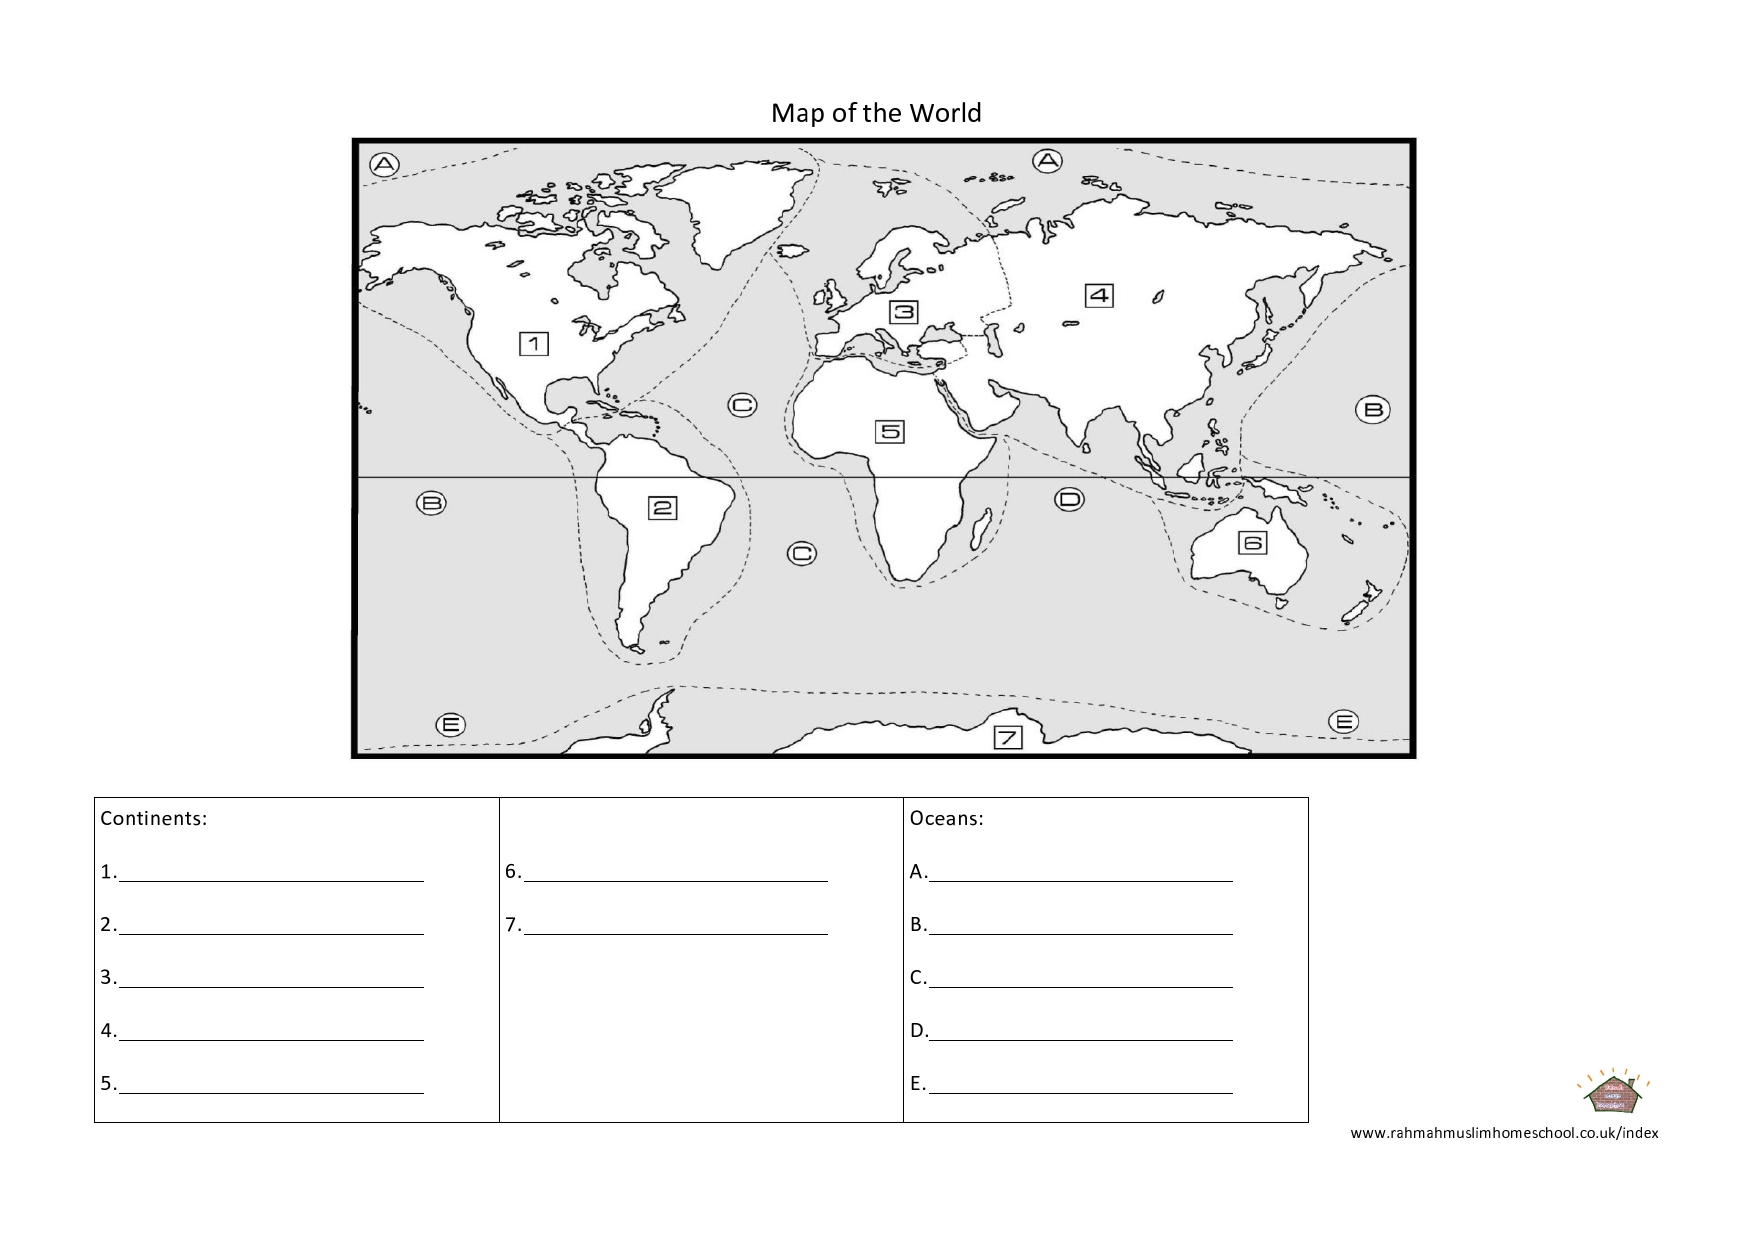 Worksheet Continents And Oceans Of The World Worksheet geography continents and oceans worksheet the resources of download worksheet